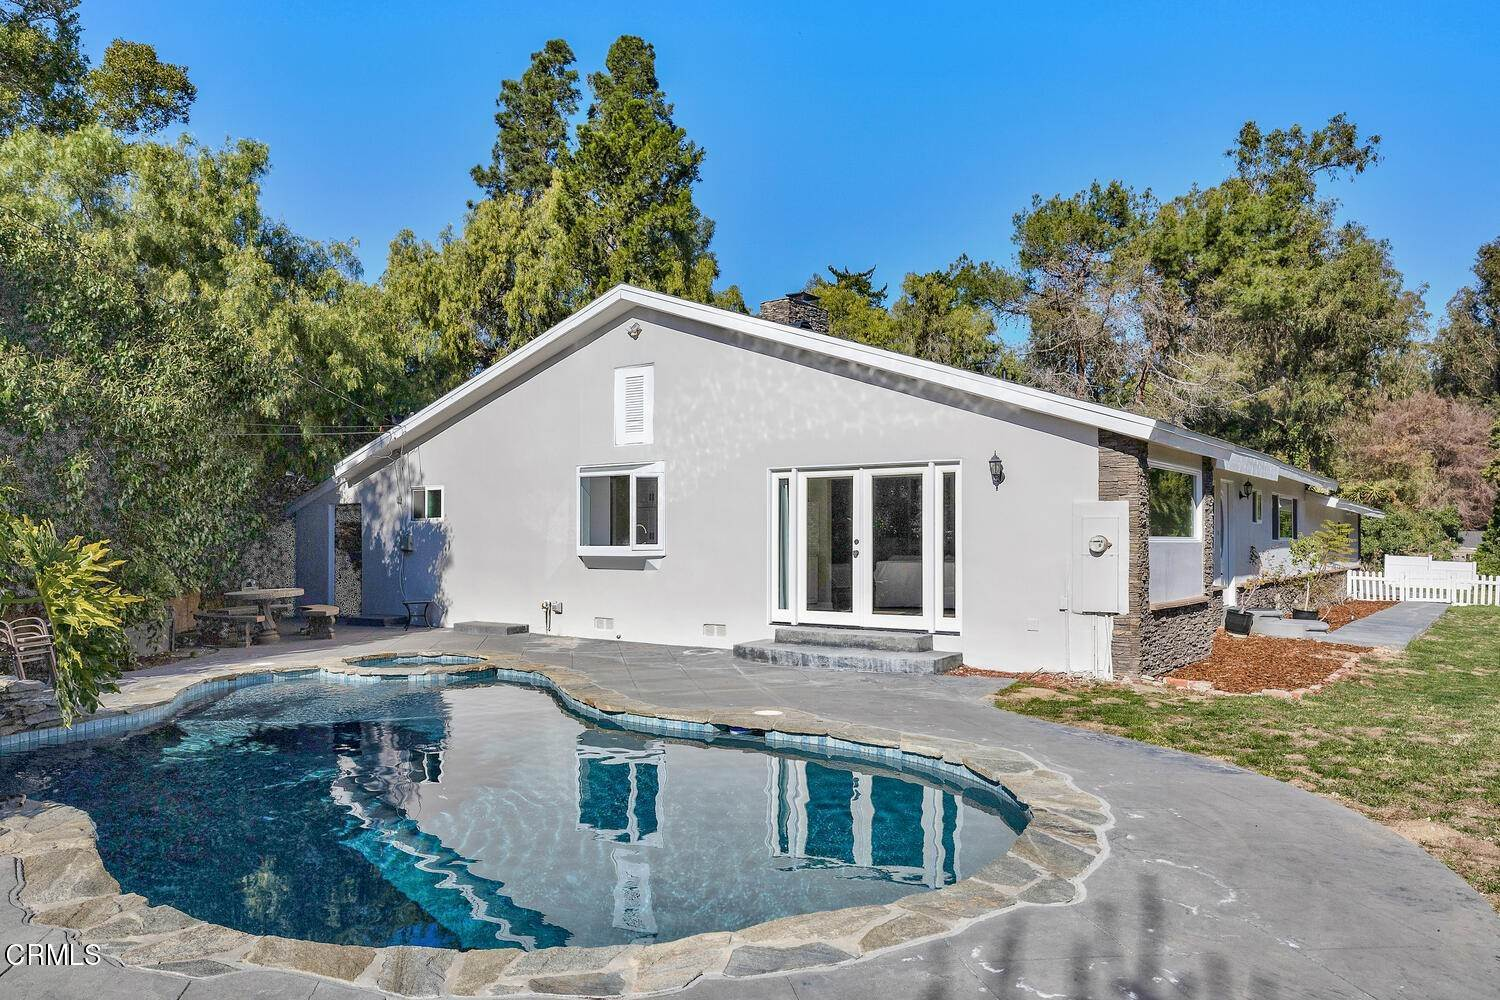 2. Single Family Homes for Sale at 39 - 41 Ramona Place Camarillo, California 93010 United States